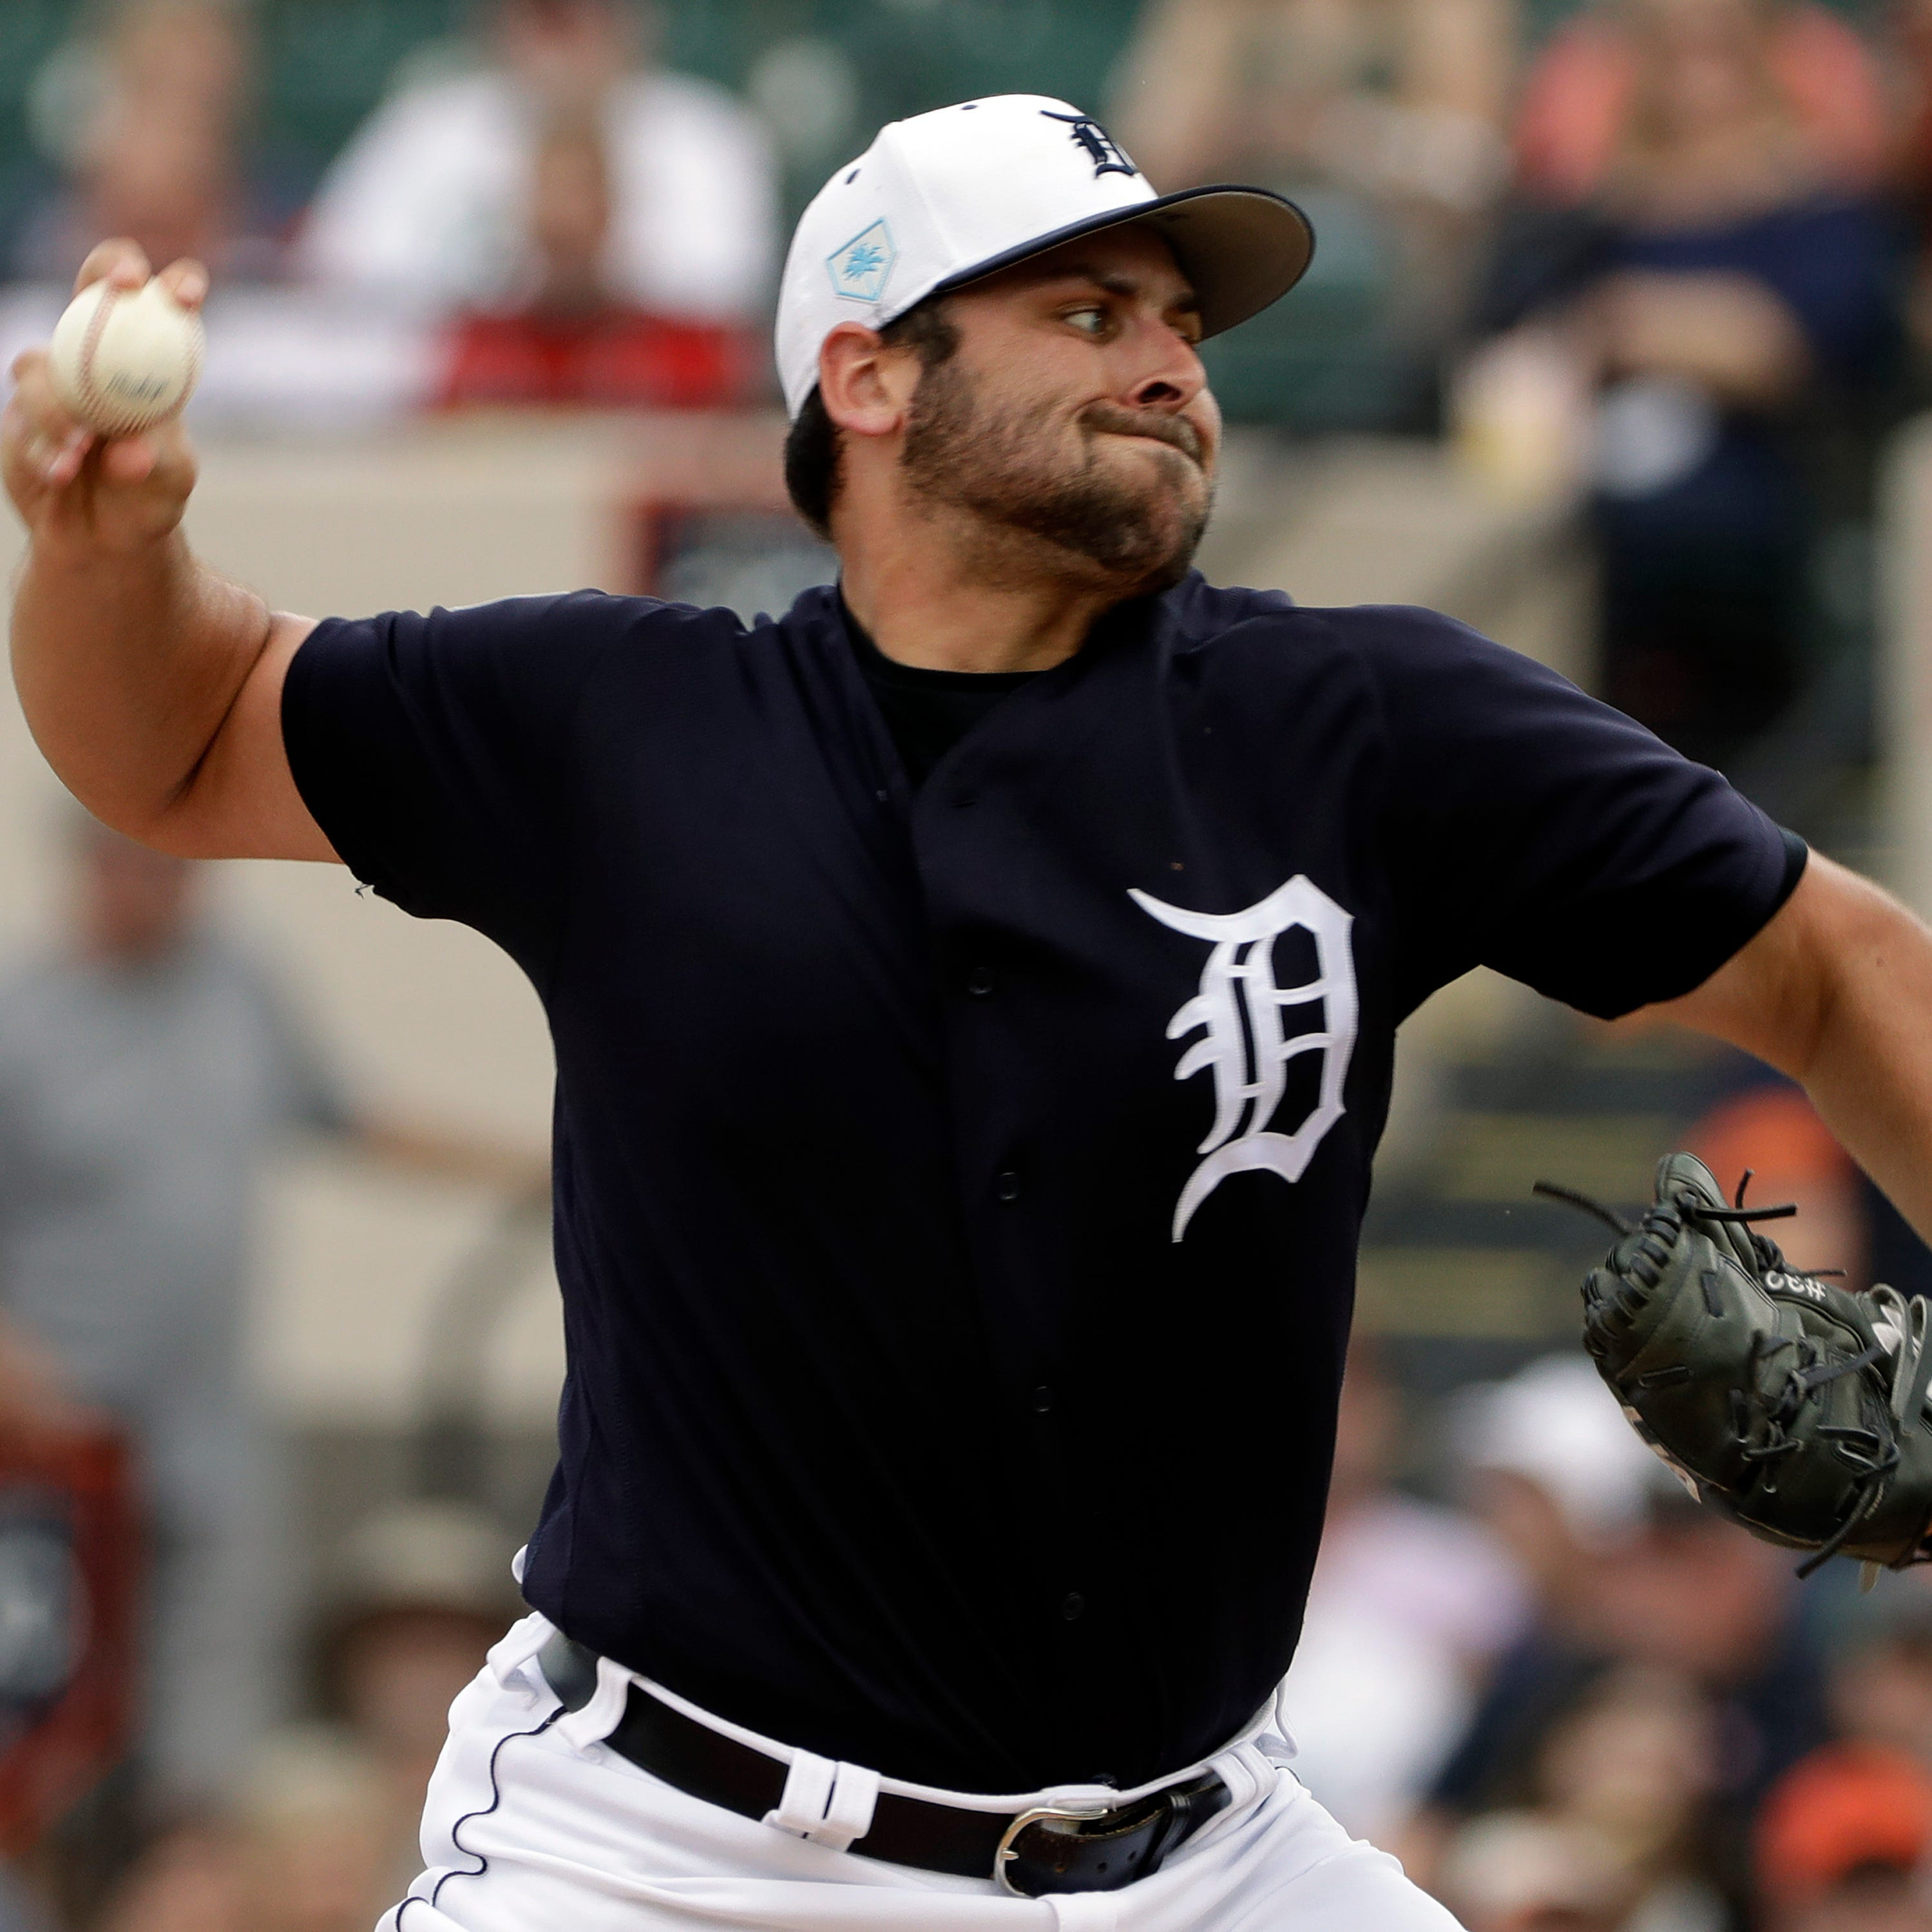 Tigers victory includes eventful day for Michael Fulmer, Mikie Mahtook, Casey Mize